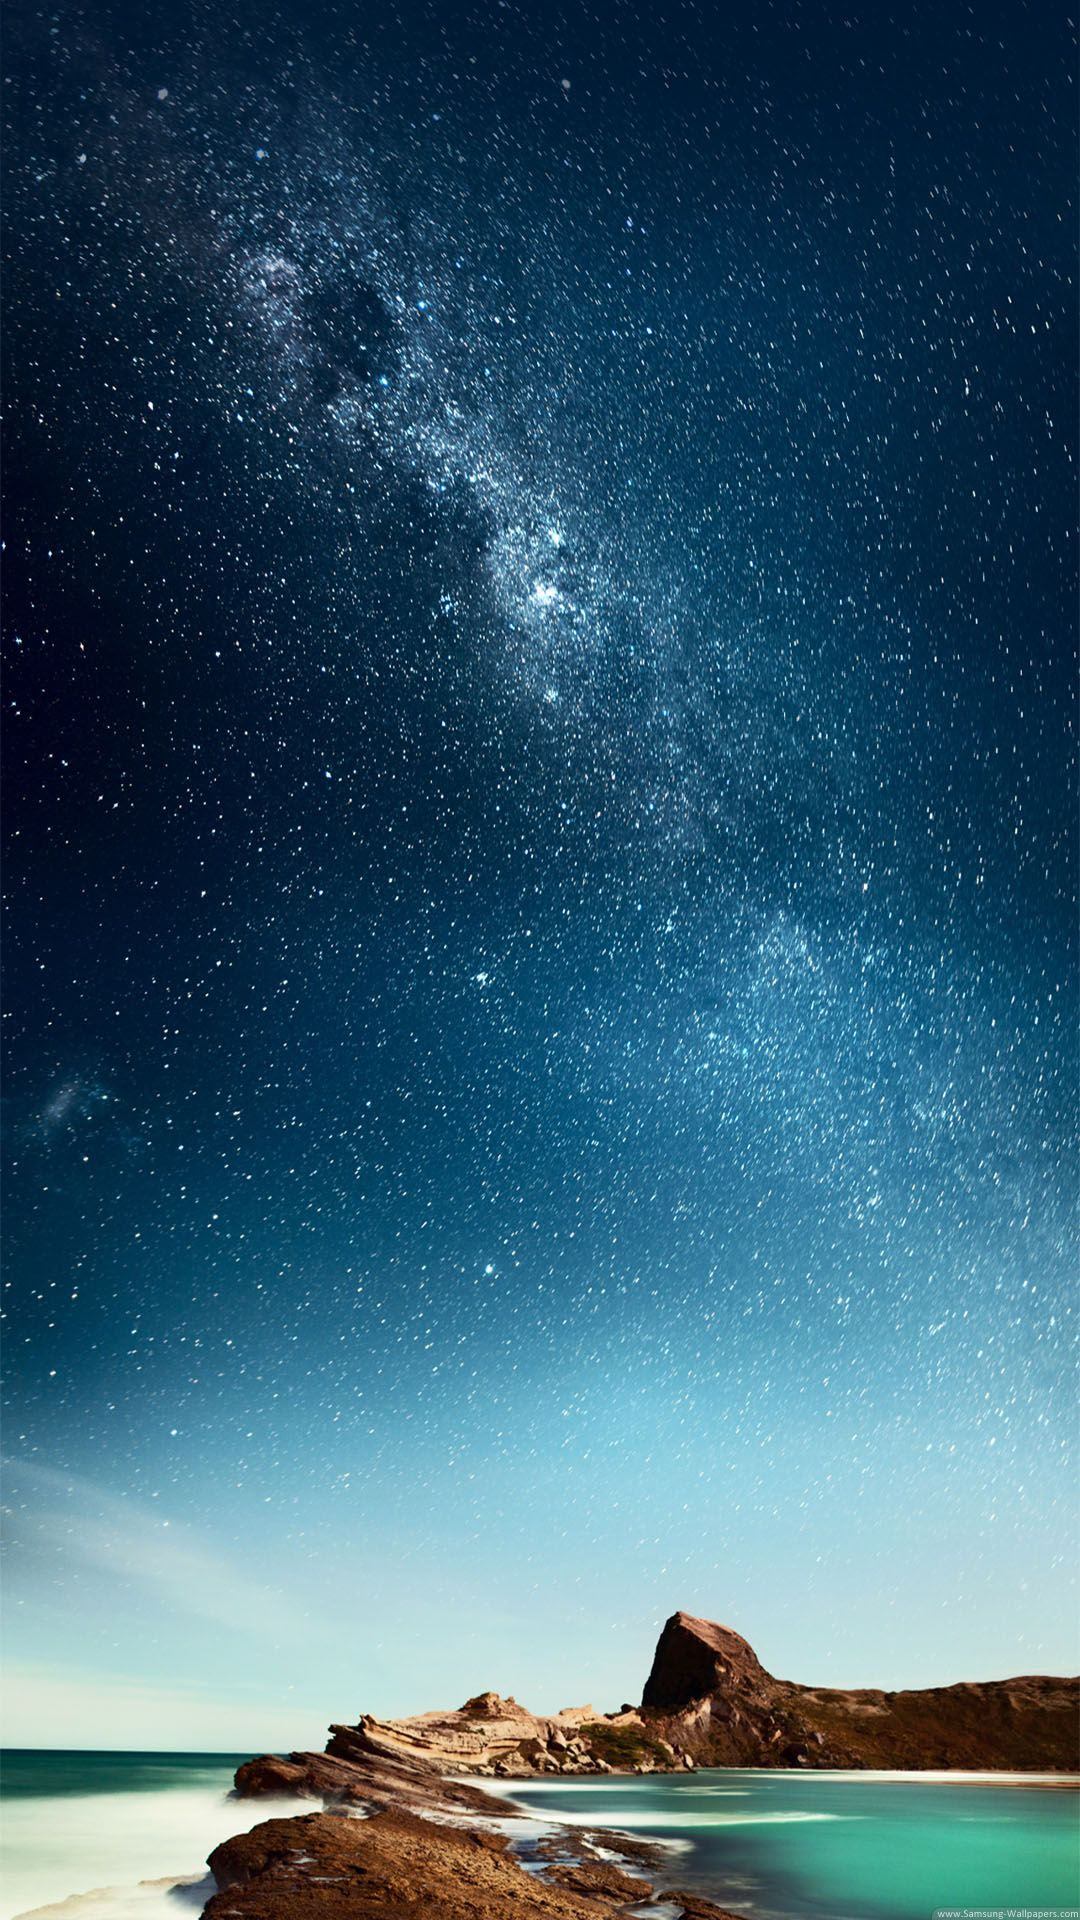 Galaxy Hd Phone Wallpapers Top Free Galaxy Hd Phone Backgrounds Wallpaperaccess